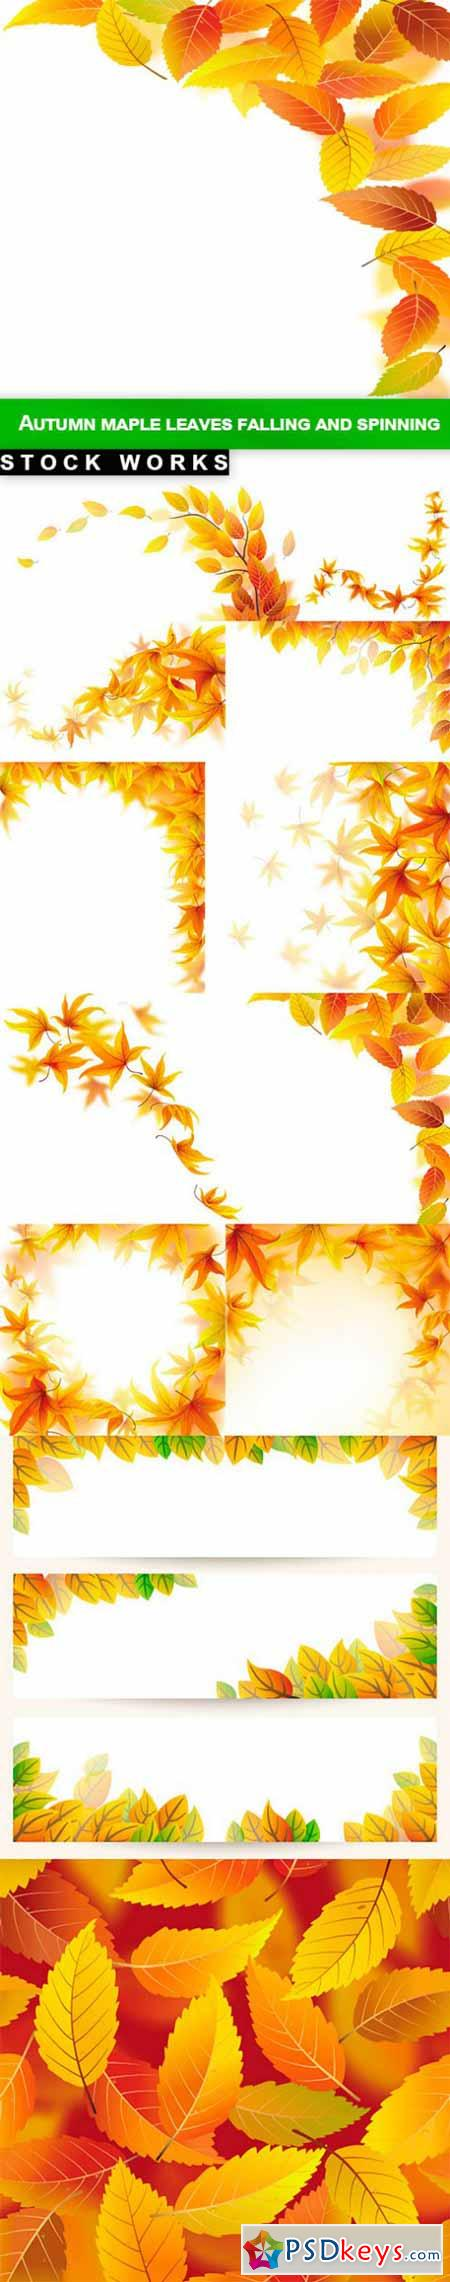 Autumn maple leaves falling and spinning - 12 EPS